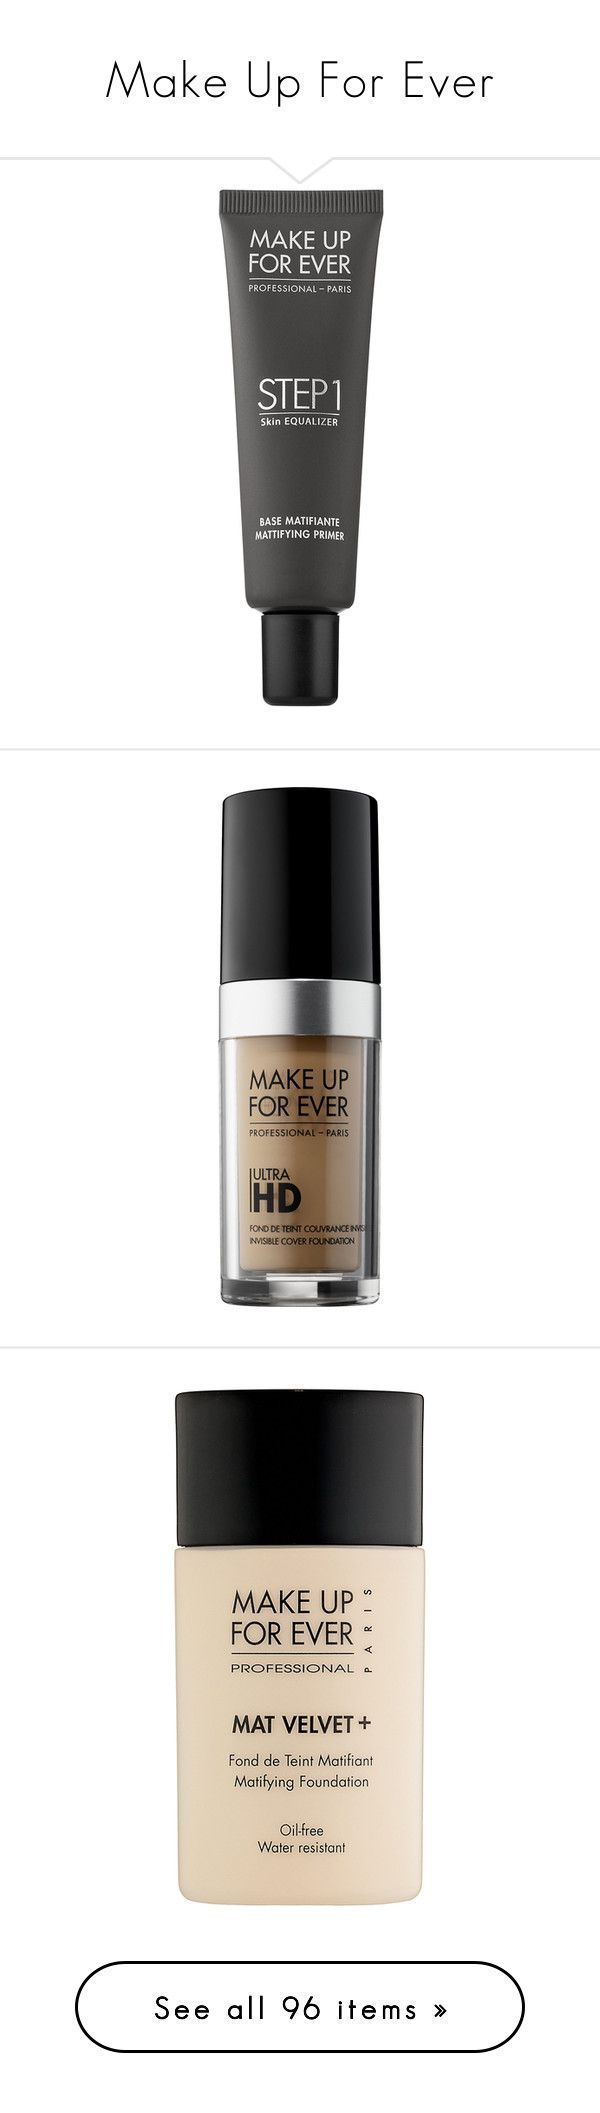 """""""Make Up For Ever"""" by shoppings9 ❤ liked on Polyvore featuring beauty products, makeup, face makeup, makeup primer, make up for ever, foundation, make up for ever foundation, liquid foundation, beauty and faces"""